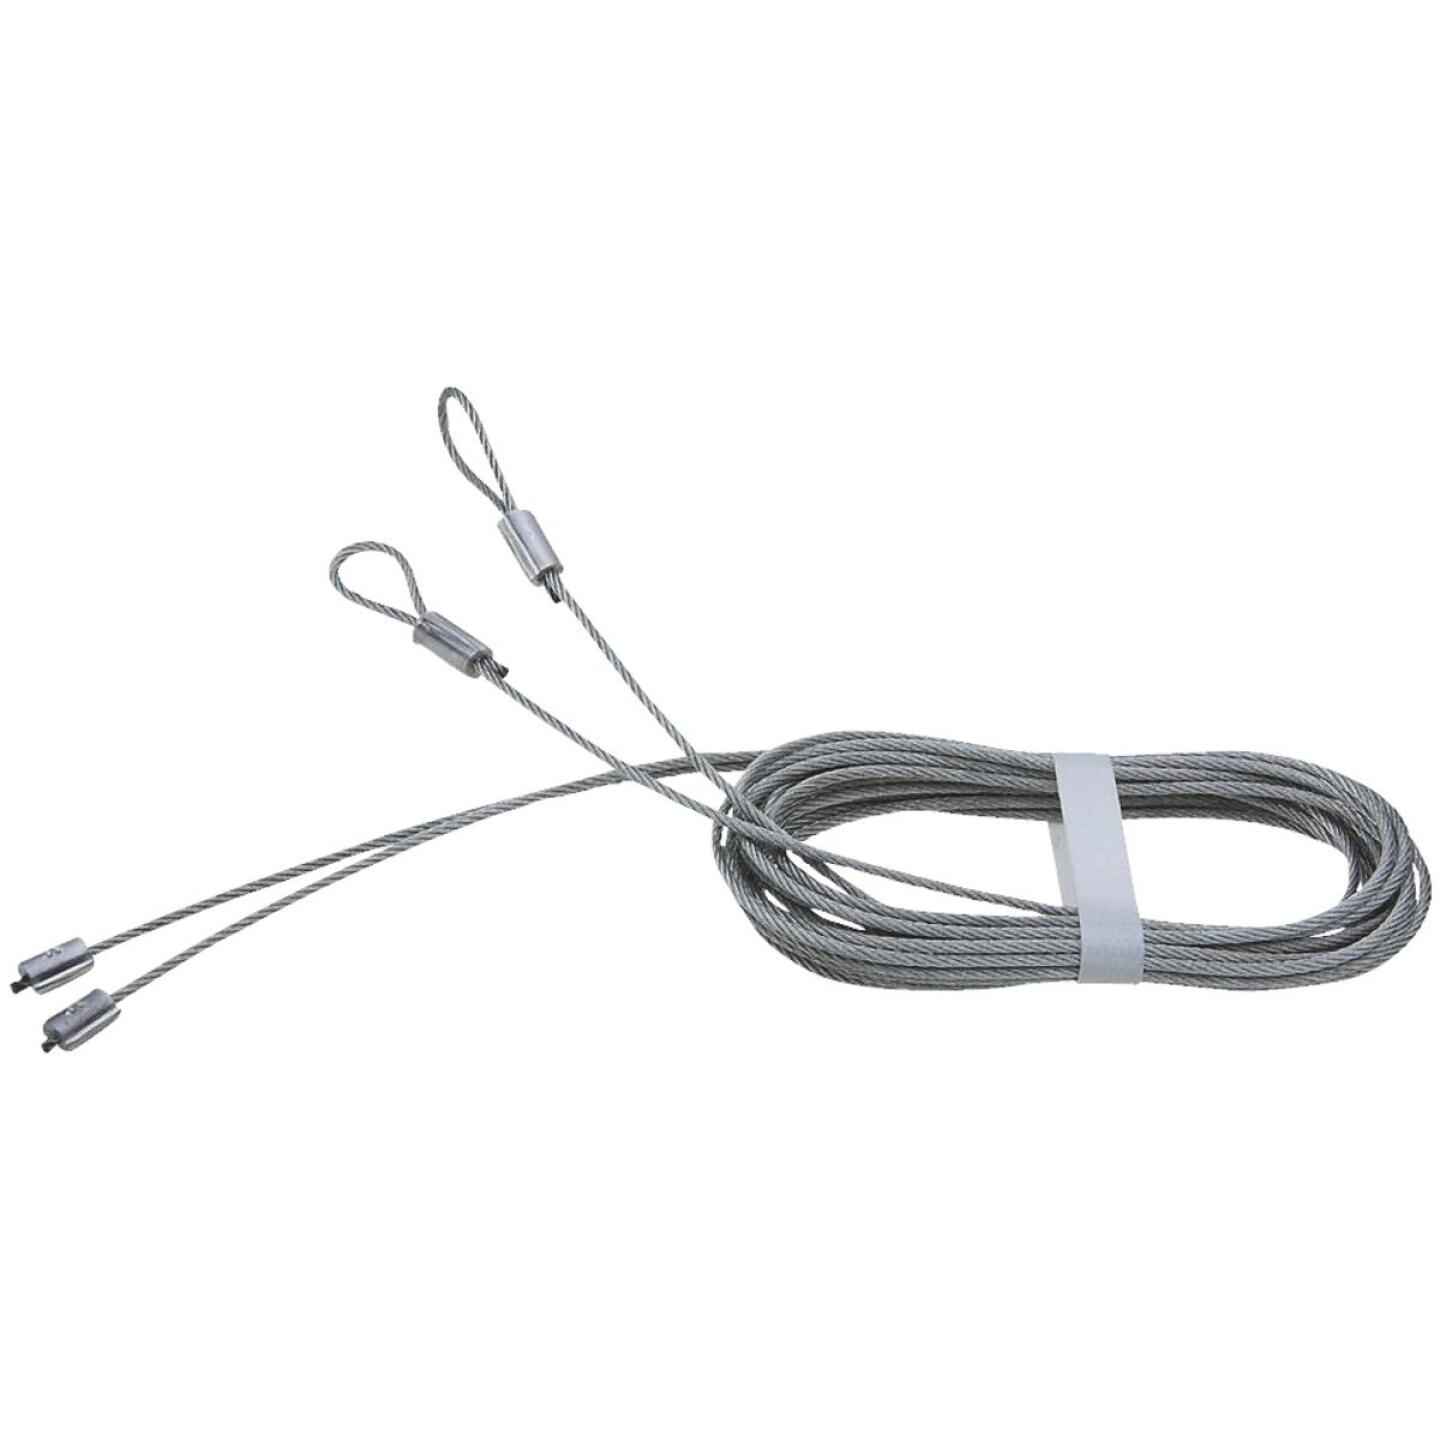 National 8 Ft. 8 In. L. x 3/32 In. Dia. Steel Garage Door Torsion Lift Cable Image 1